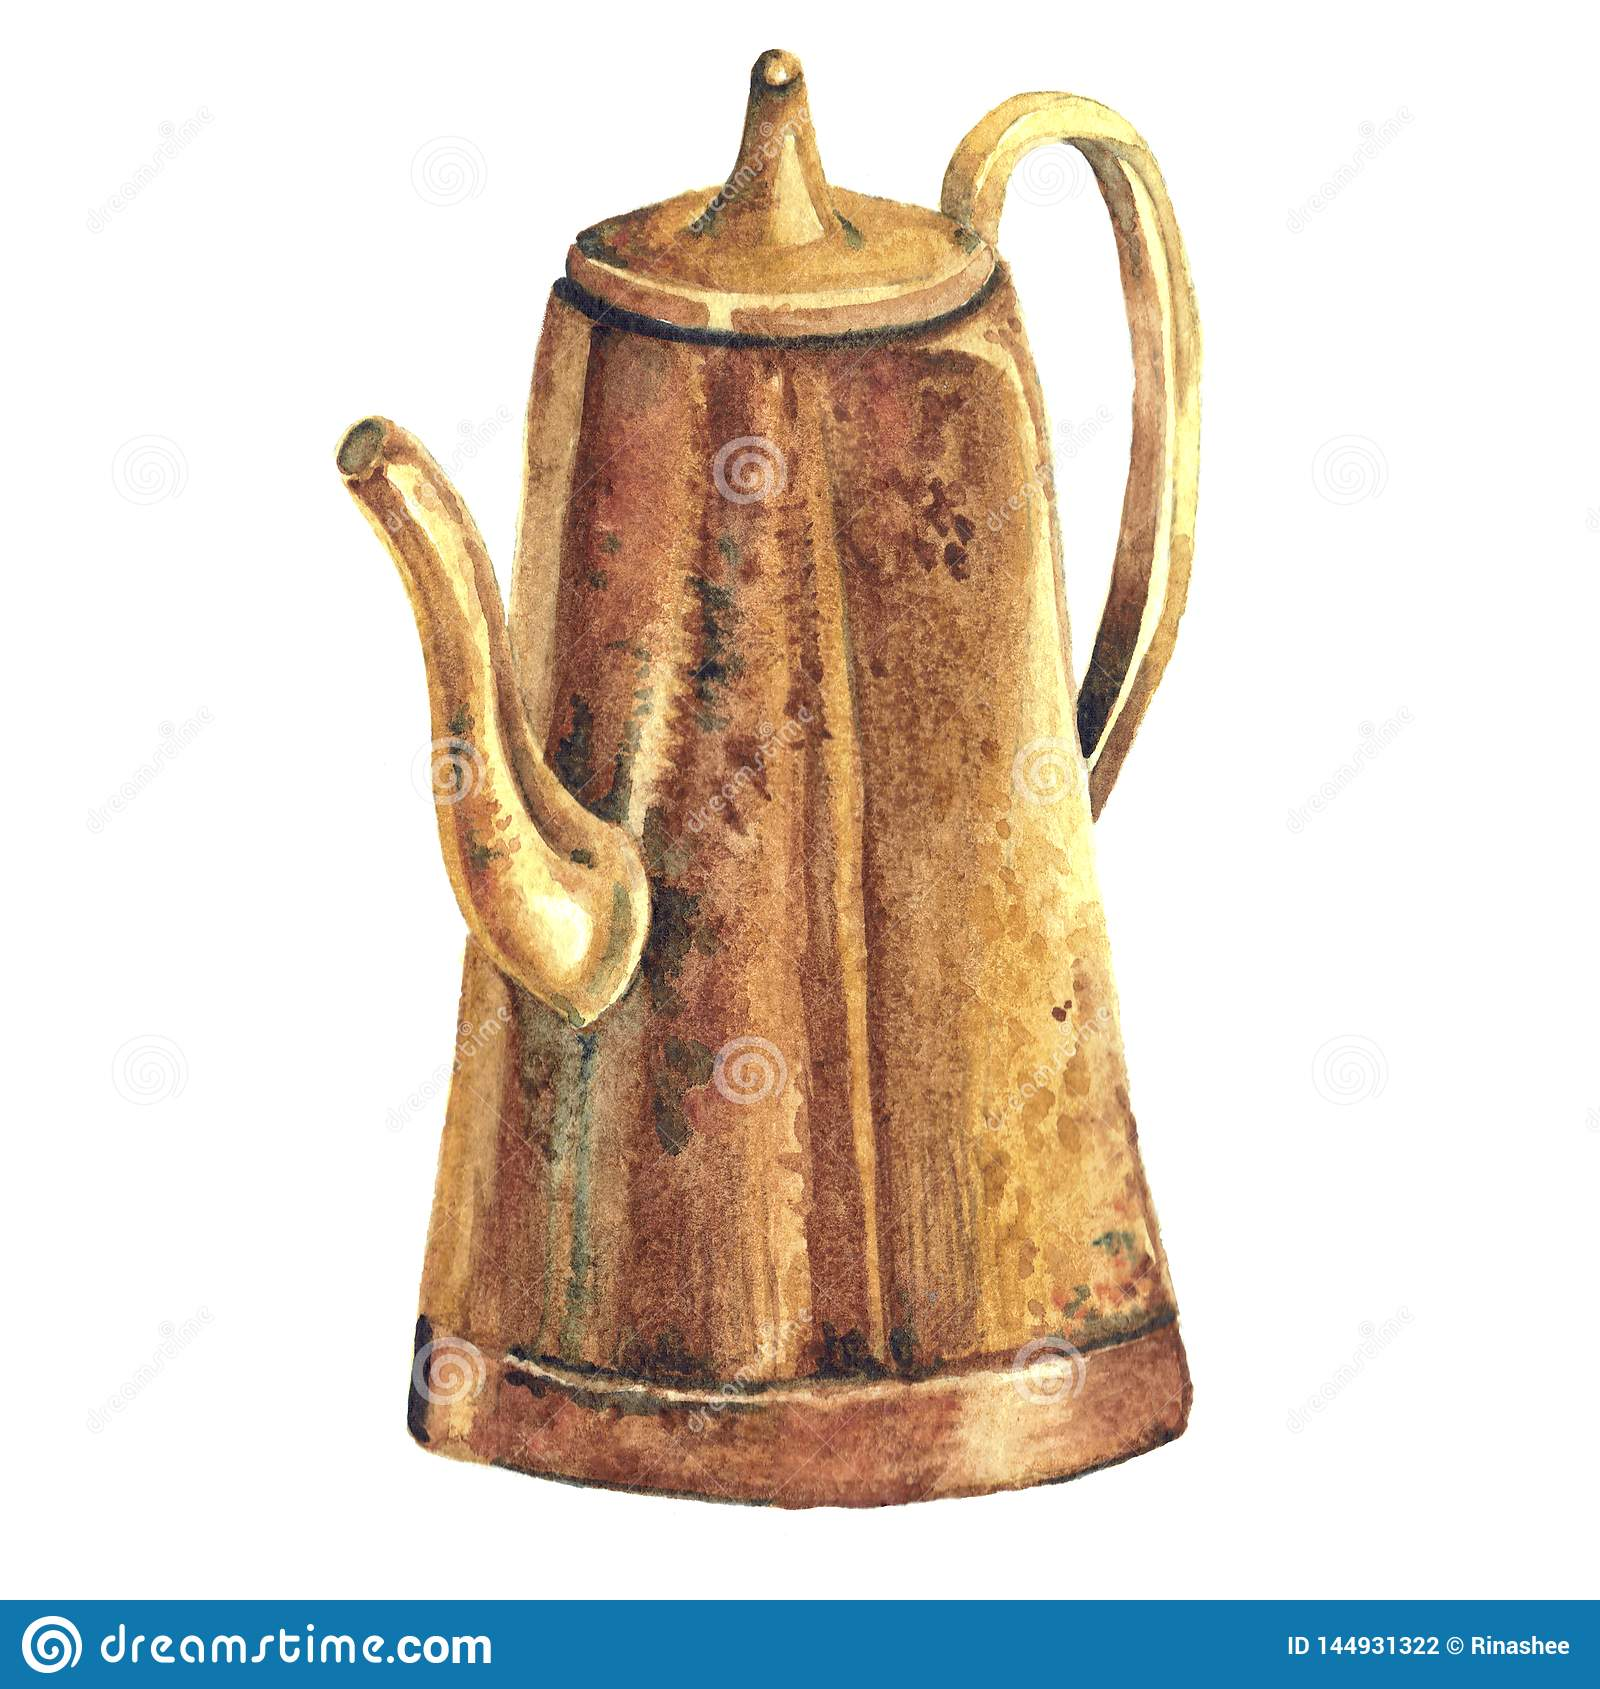 Watercolor illustration of vintage coffee pot on white background. Hand painted illustration